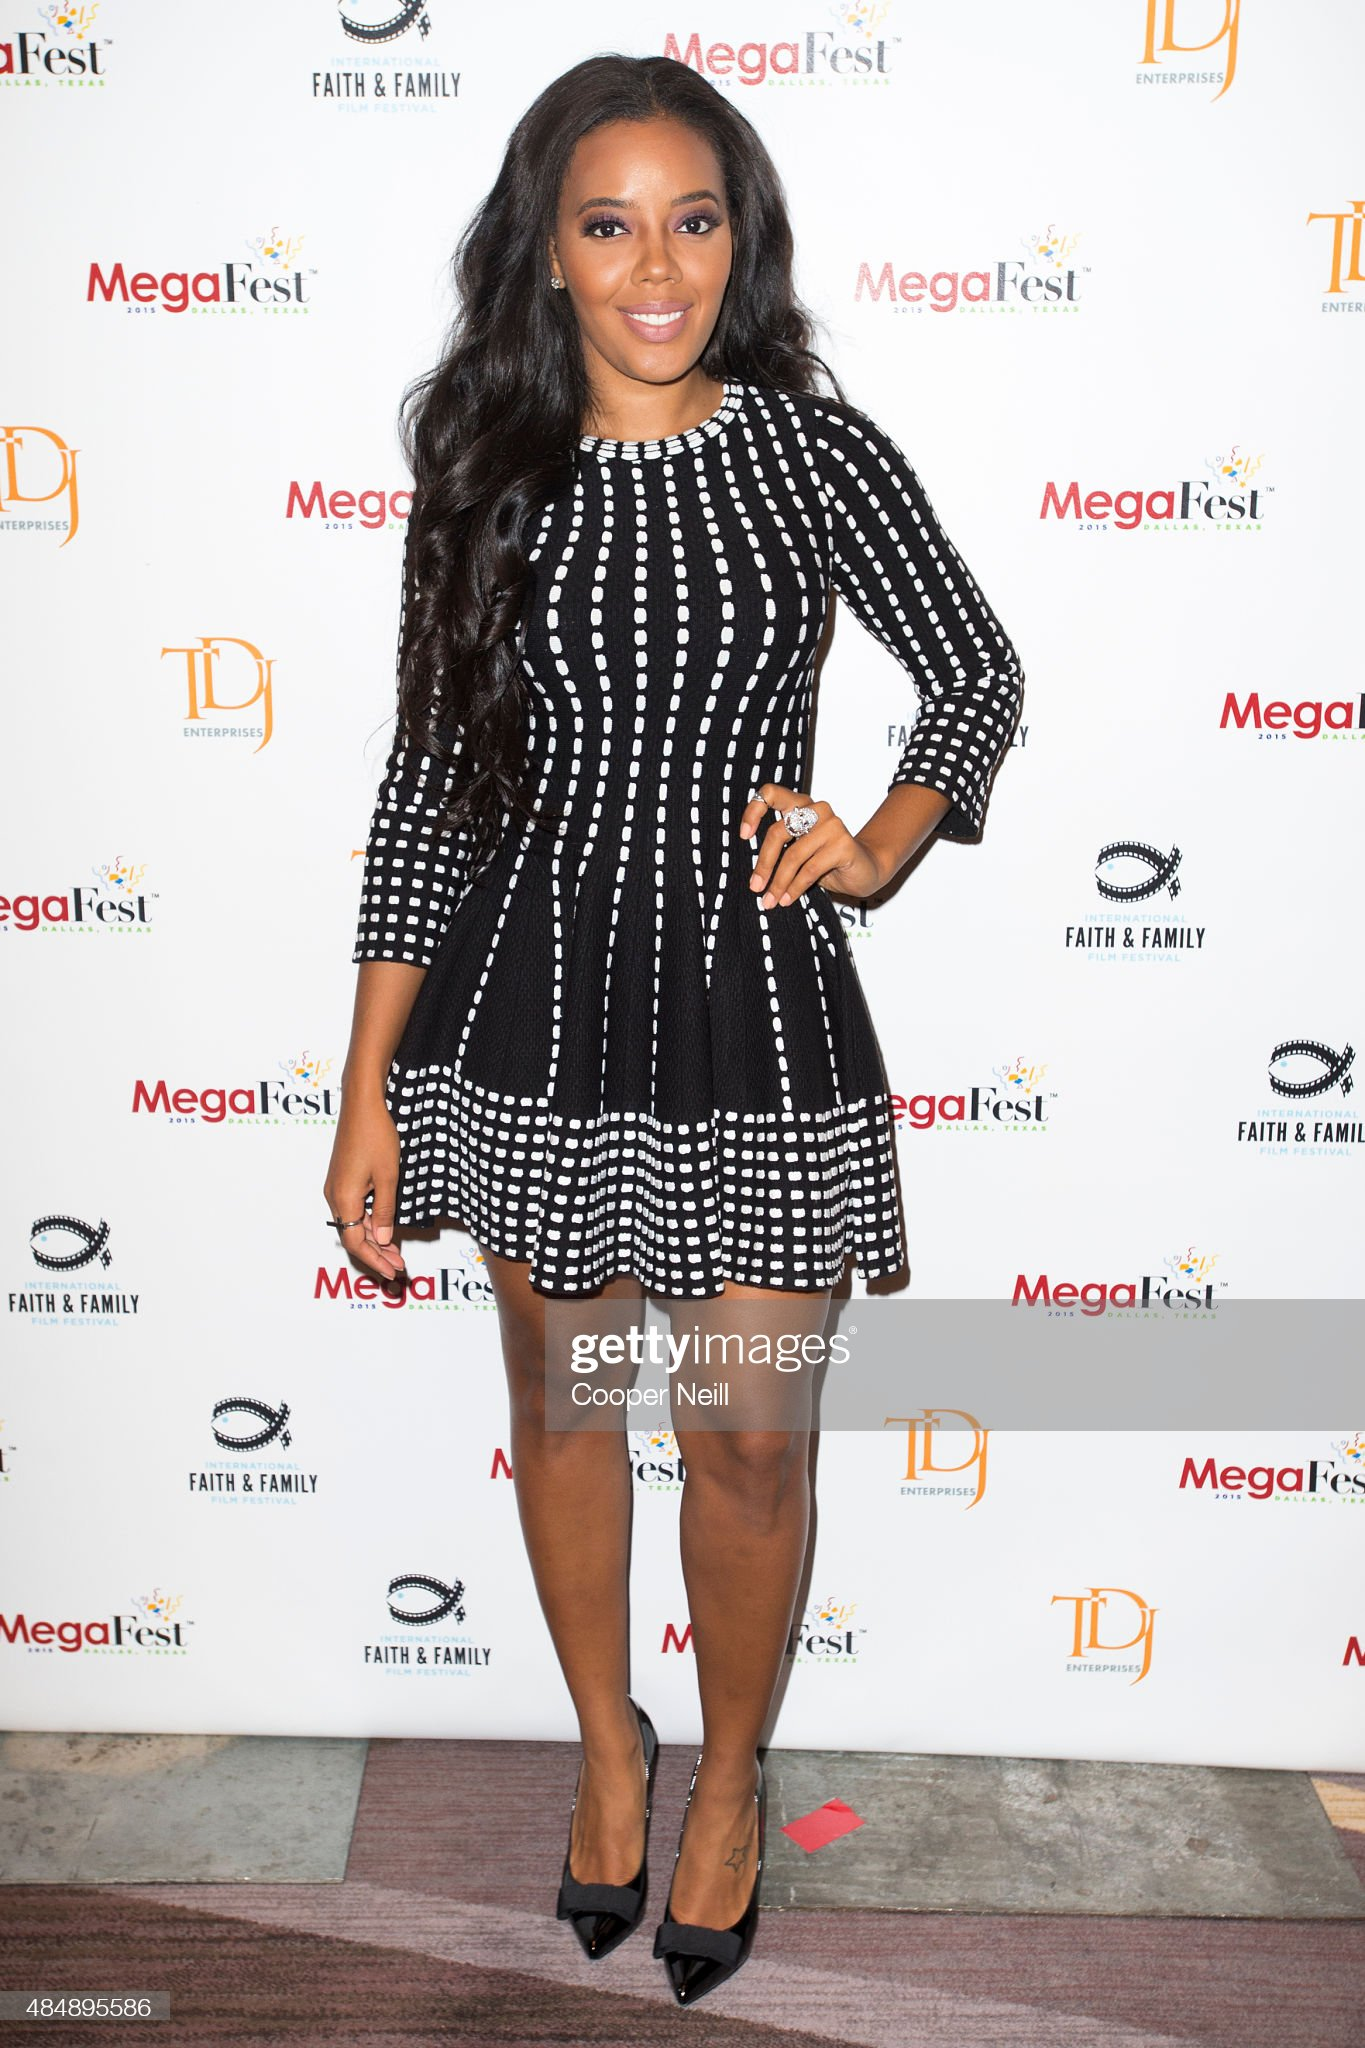 Top 80 Famosas Foroalturas - Página 2 Angela-simmons-poses-before-the-megafest-millennial-panel-at-the-omni-picture-id484895586?s=2048x2048